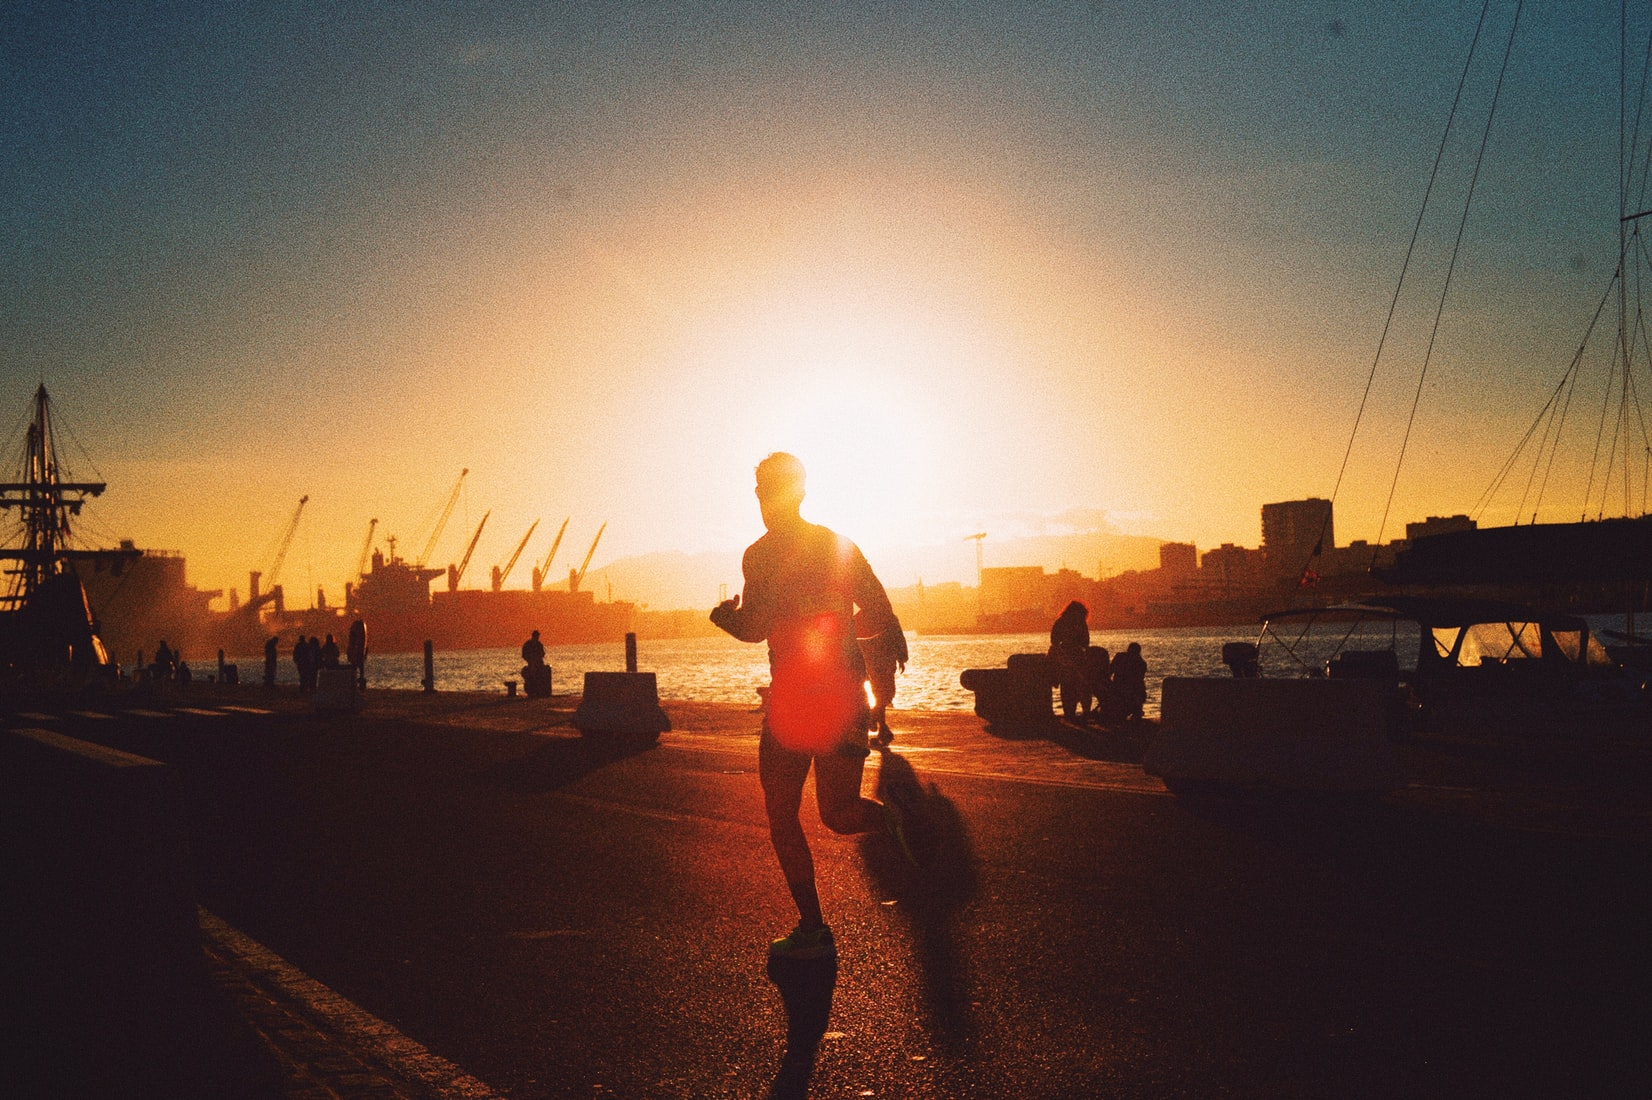 Silhouette of man jogging on the street during sunset near body of water